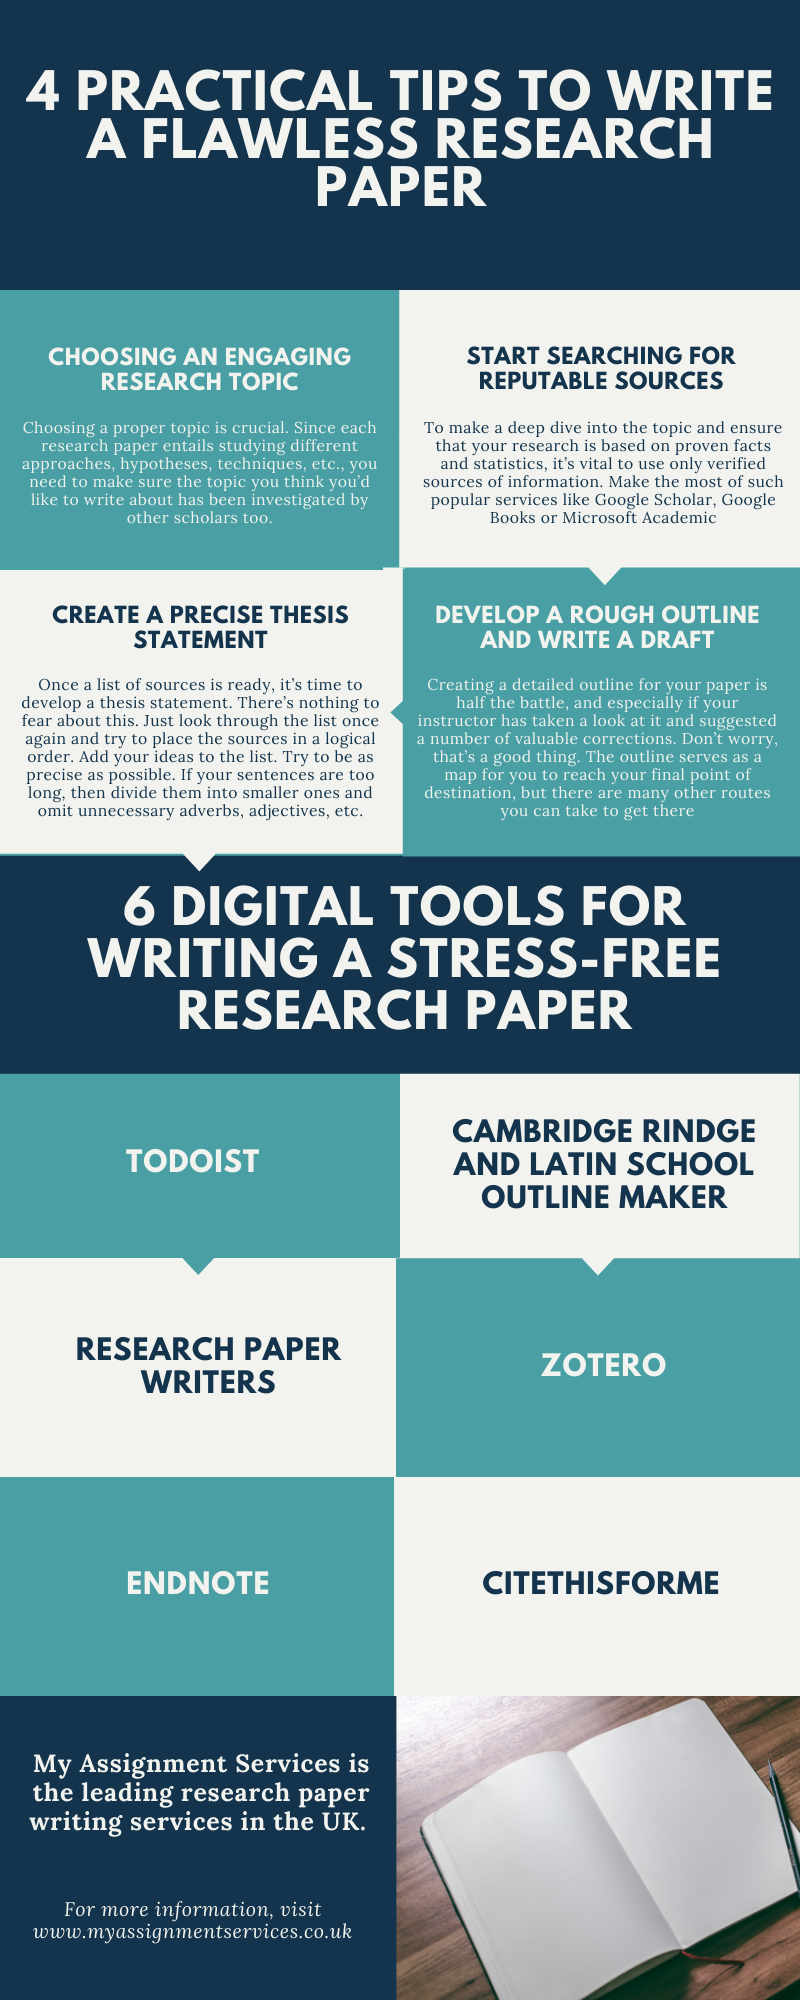 6 PRACTICAL TIPS TO WRITE A FLAWLESS RESEARCH PAPER